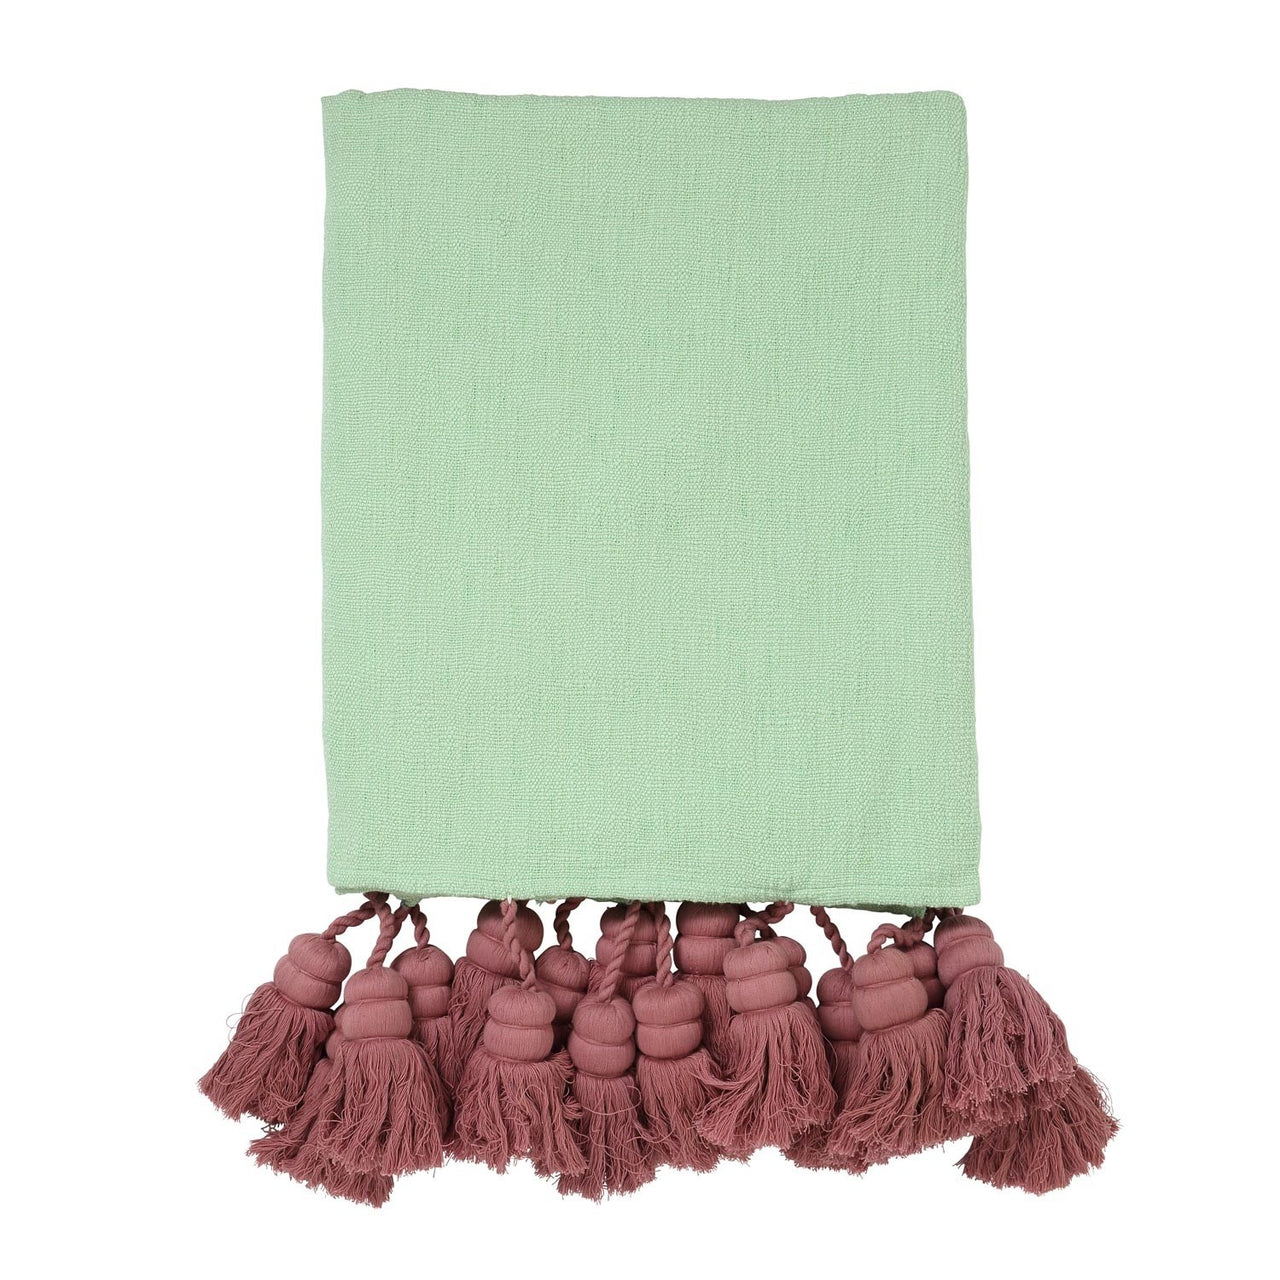 Tassel Throw - Rainforrest